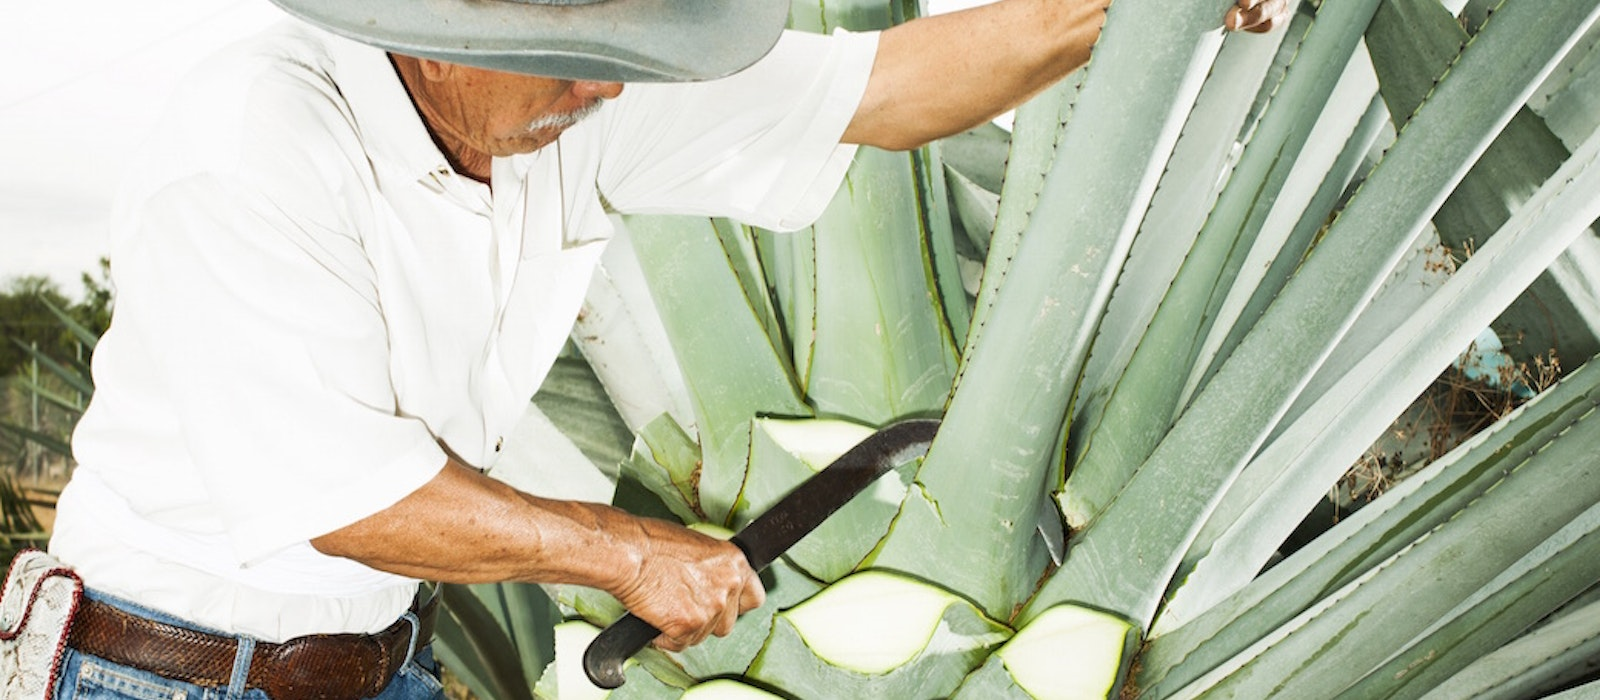 In Oaxaca, mezcal harvesting and production methods are passed down from generation to generation.